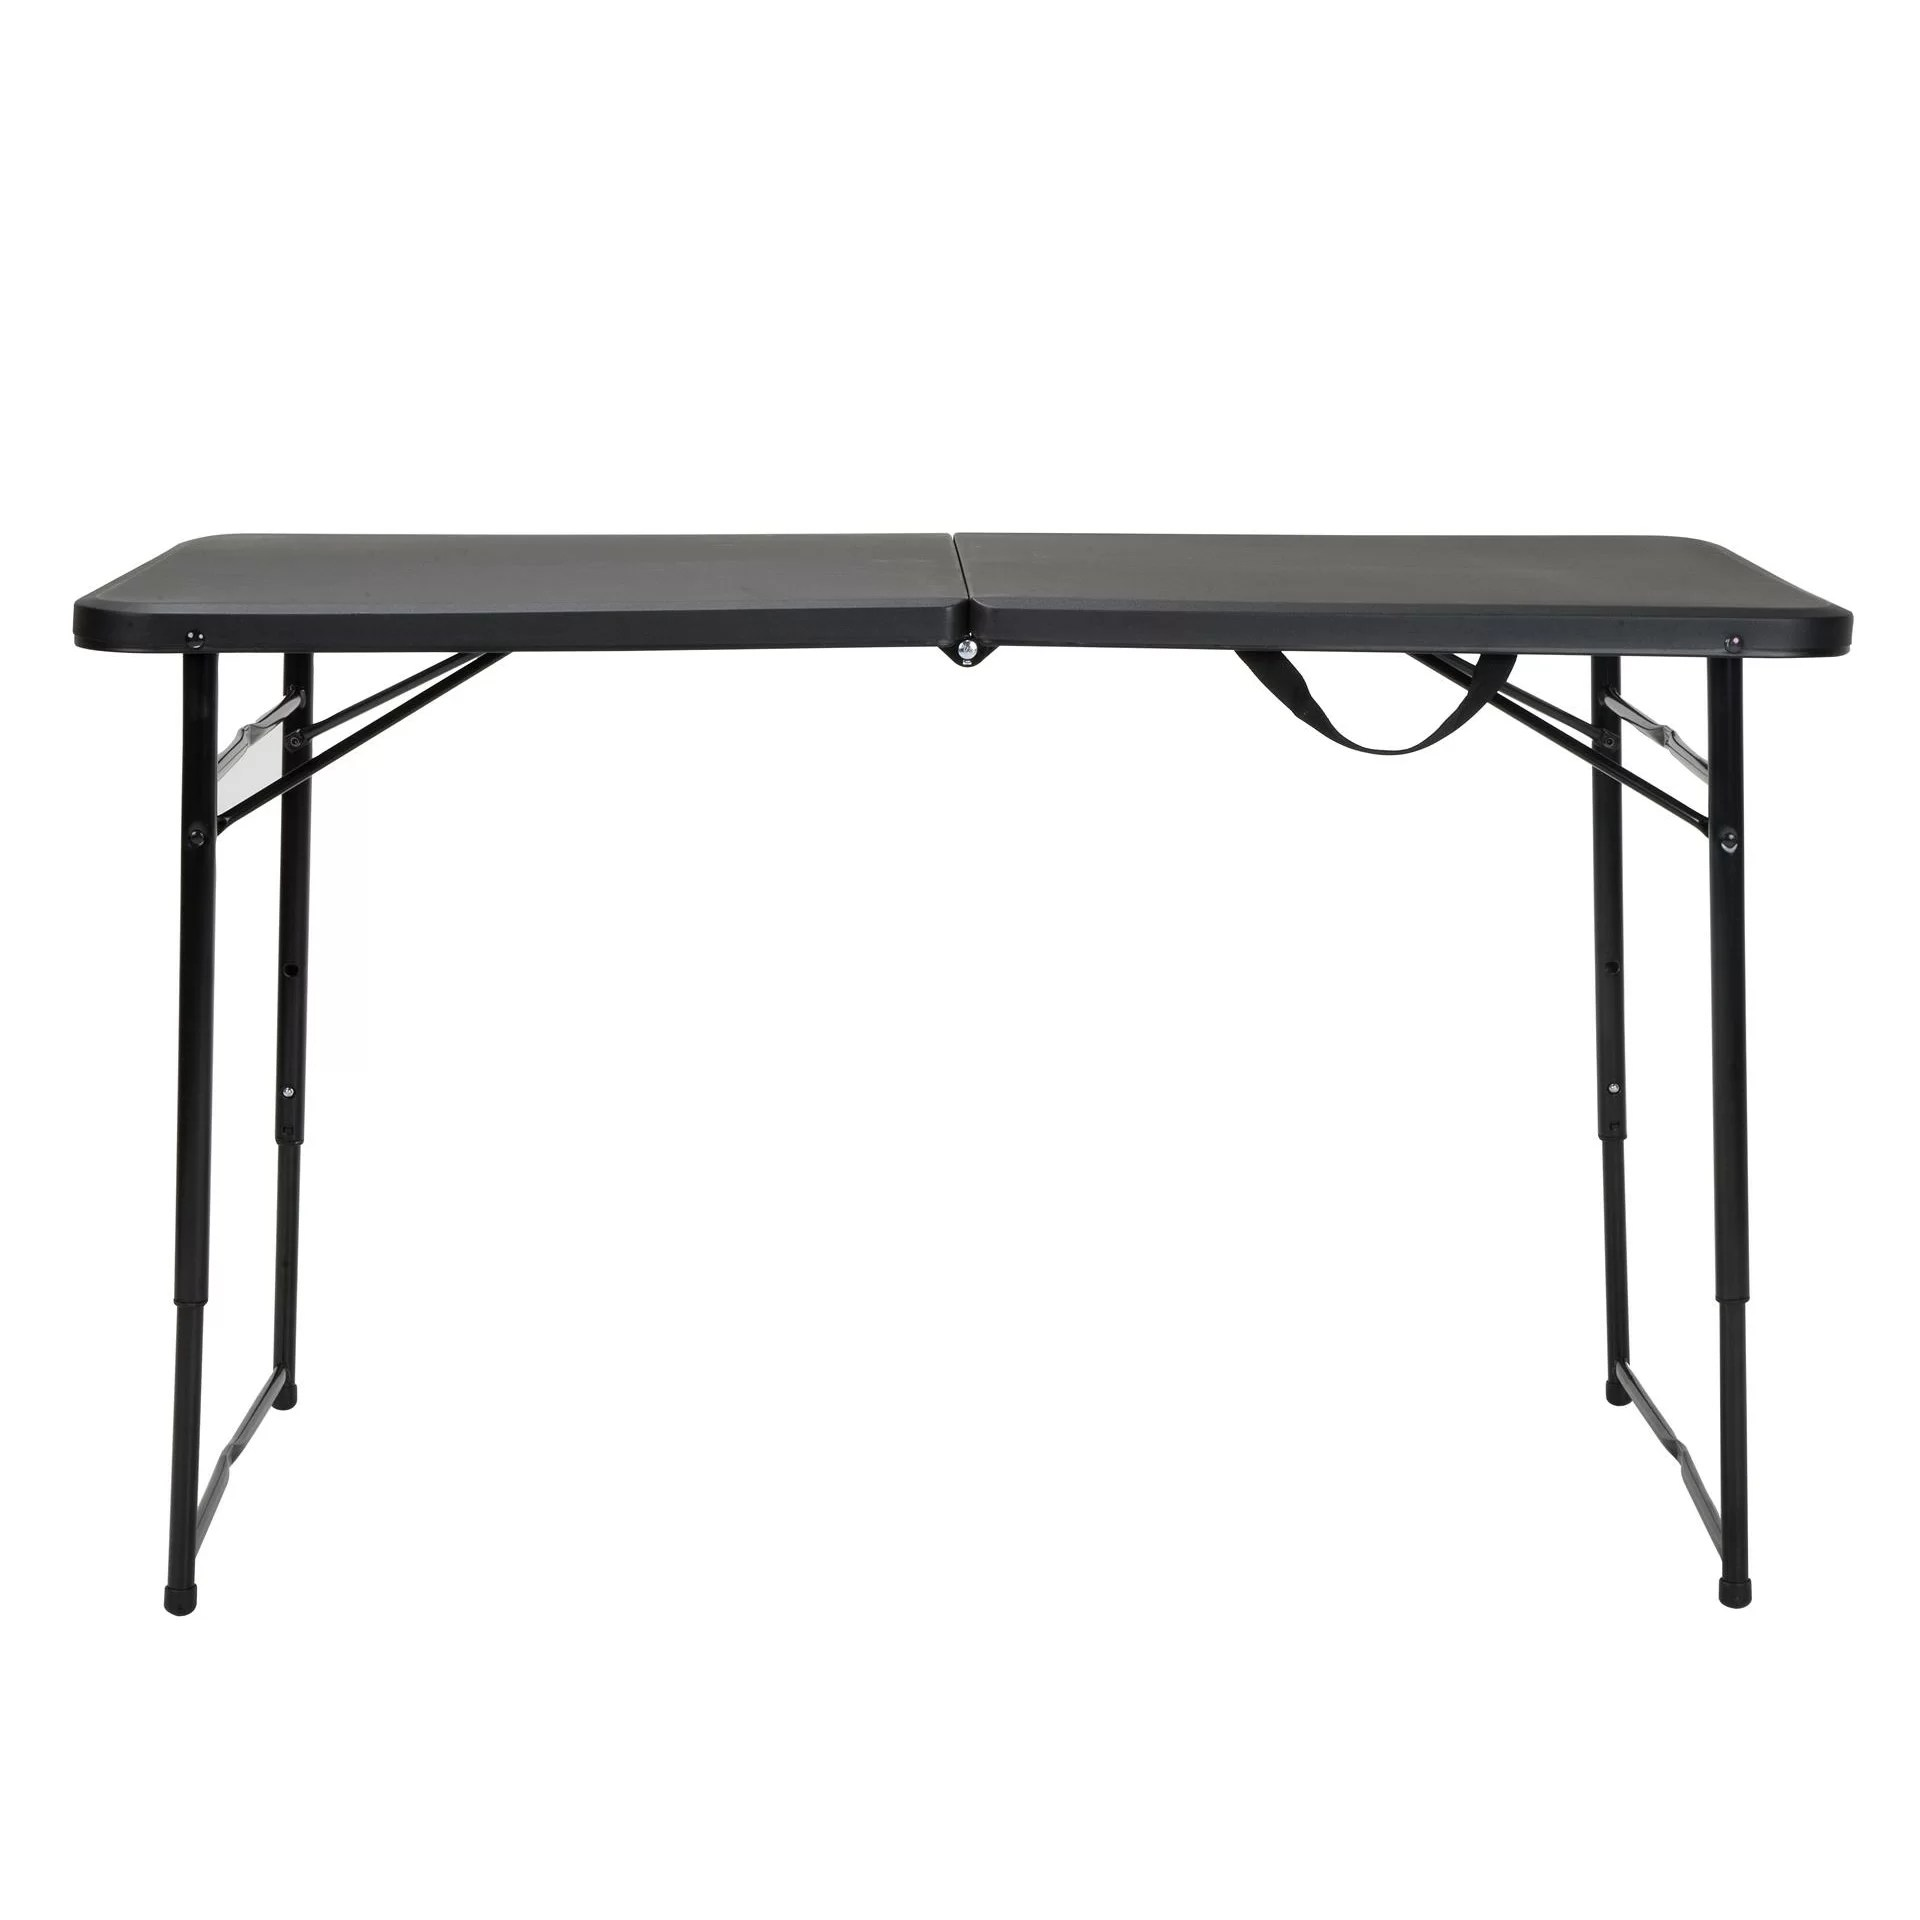 cosco card table and chairs recall accent modern home office indoor outdoor adjustable height